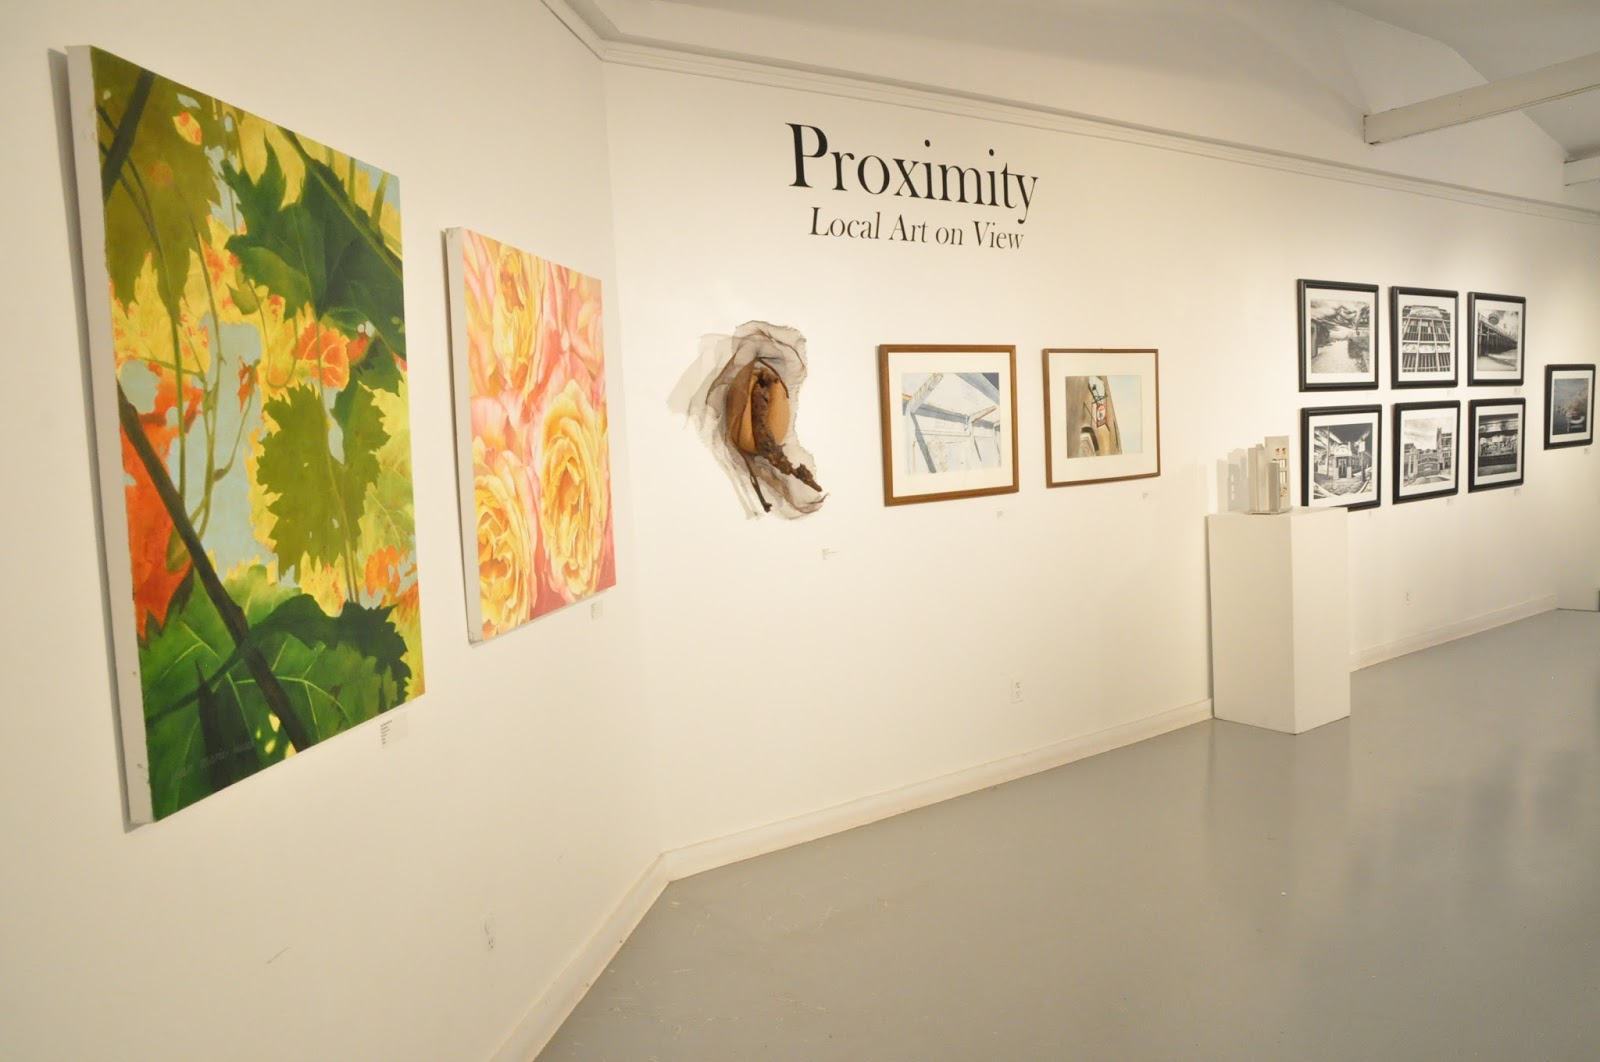 The Art School Blog: Proximity: Local Art on View at ...